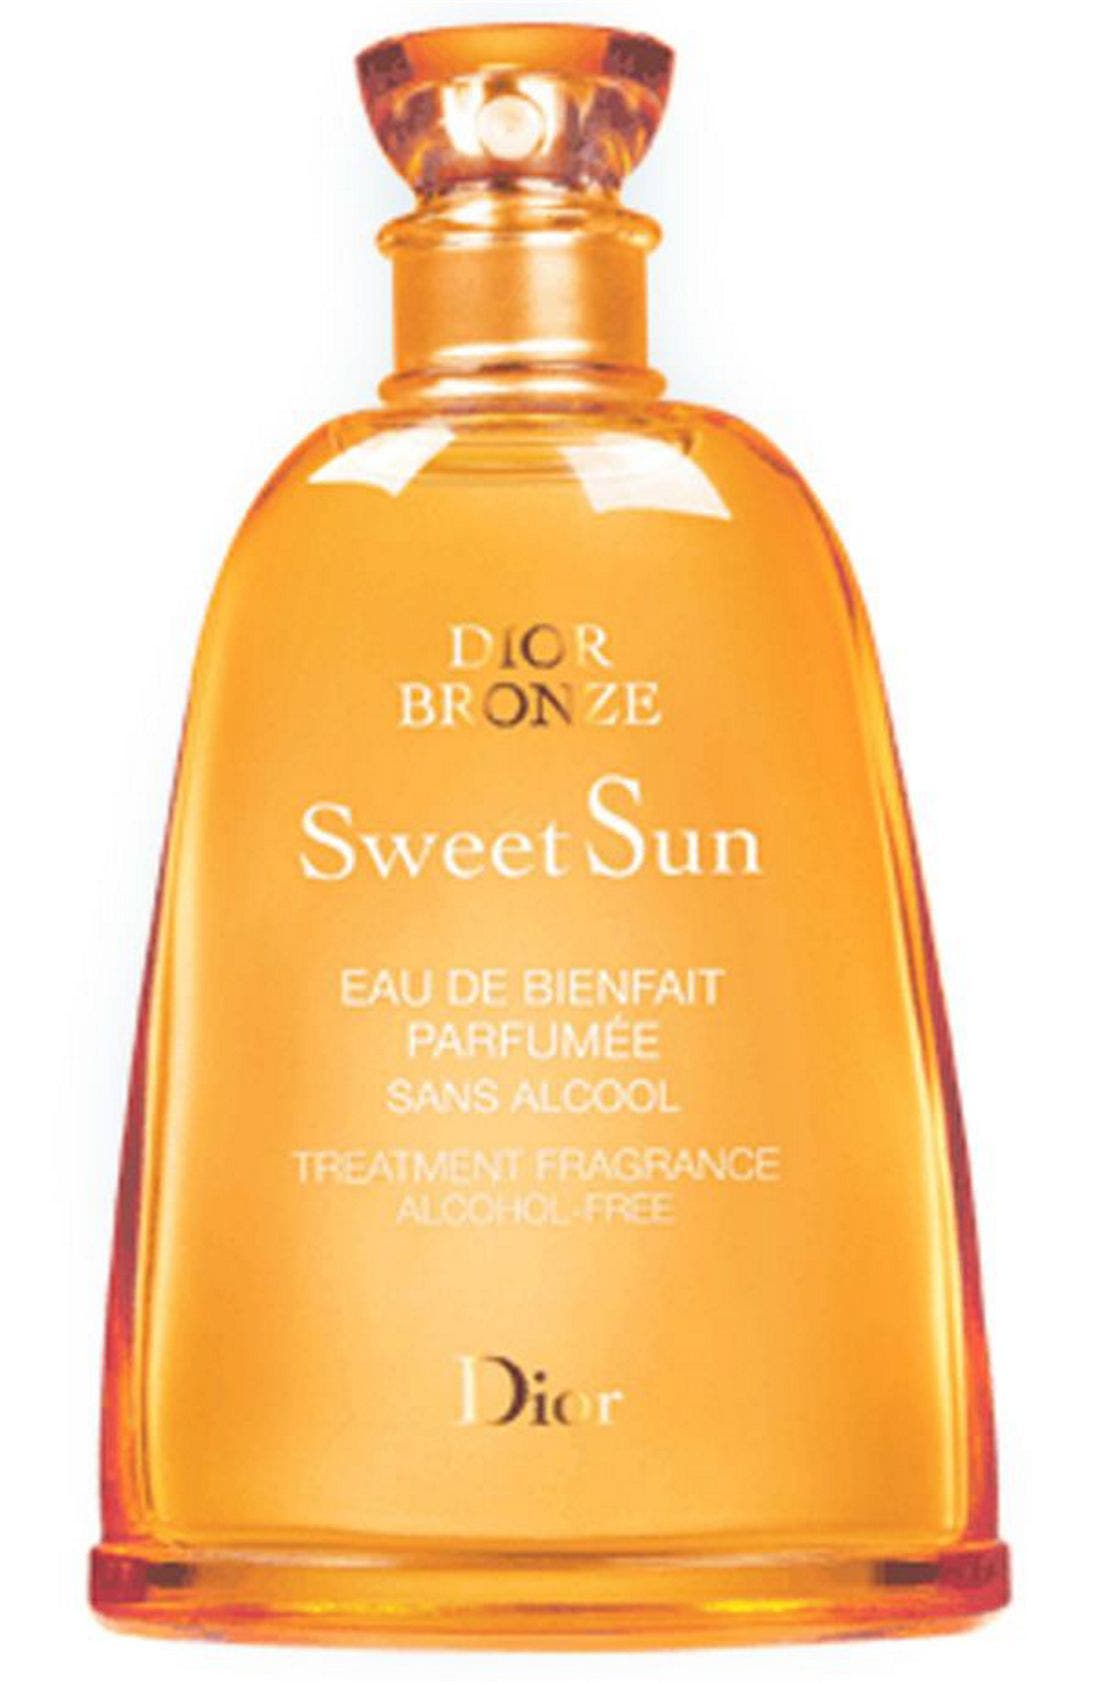 'DiorBronze' Sweet Sun, Main, color, 000